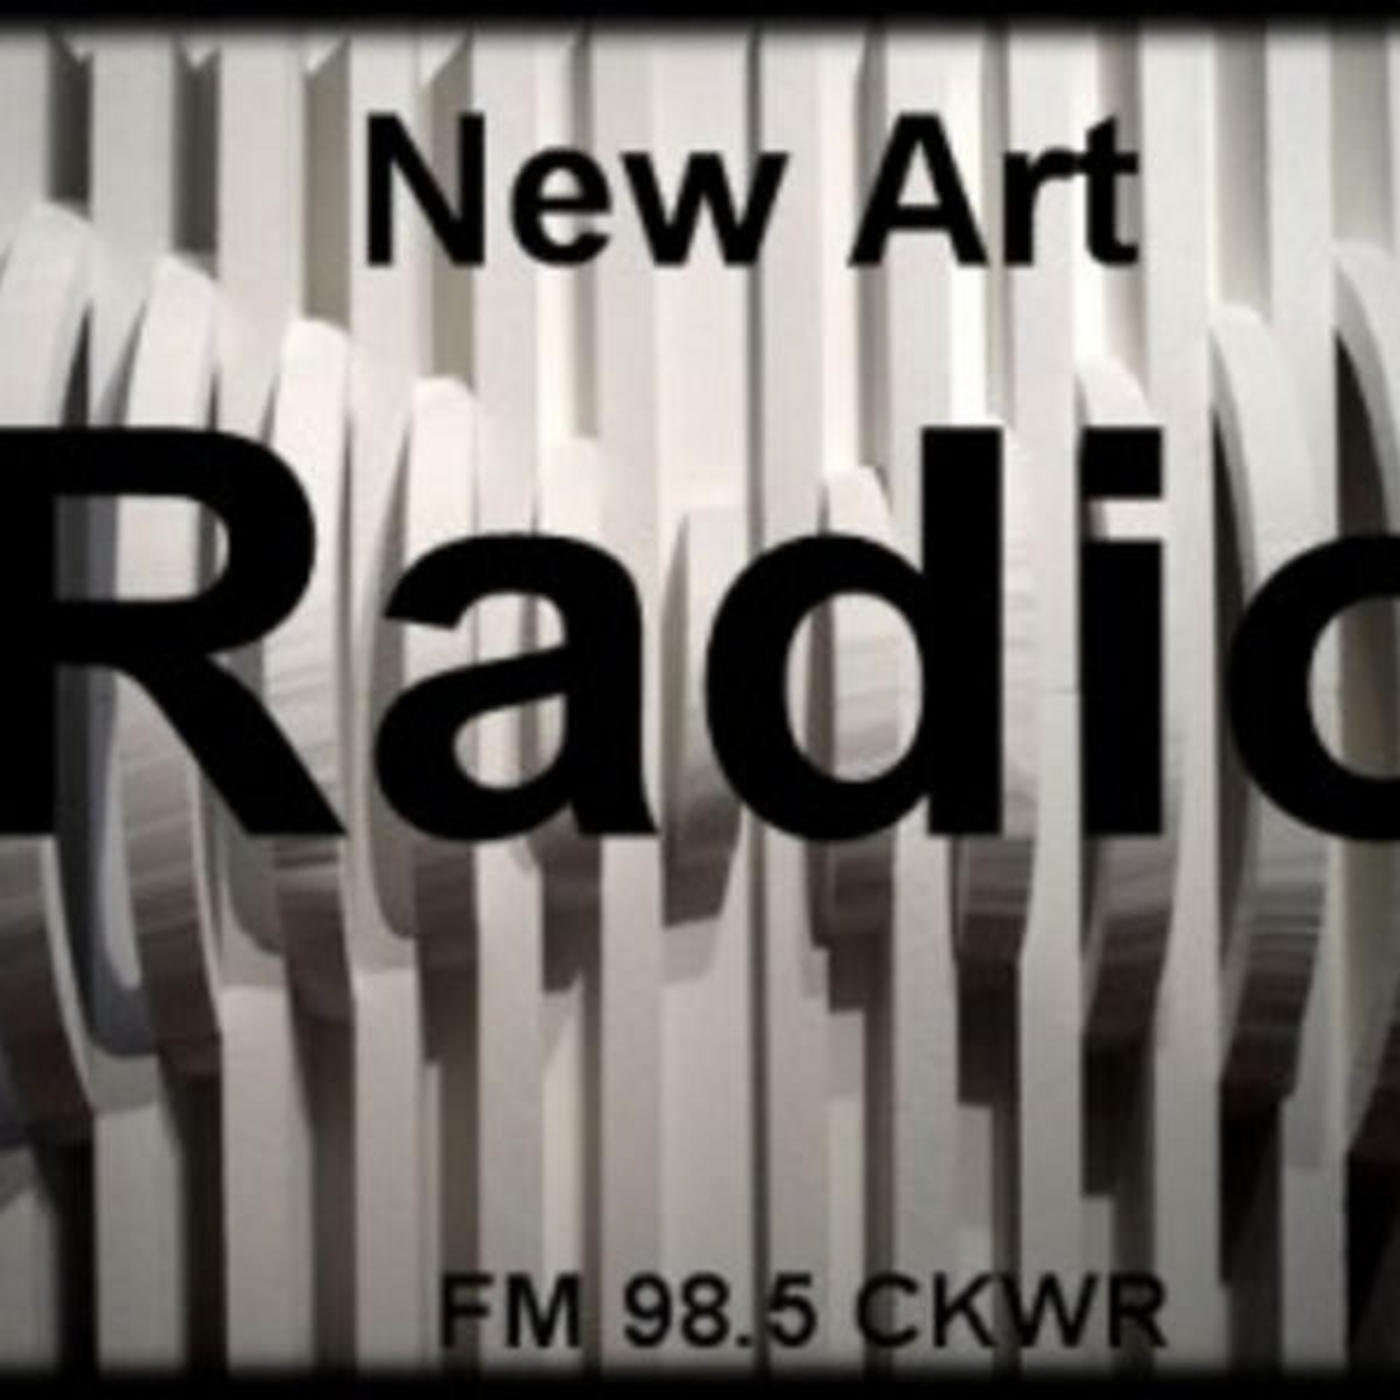 New Art Radio- The Boathouse Reopens!